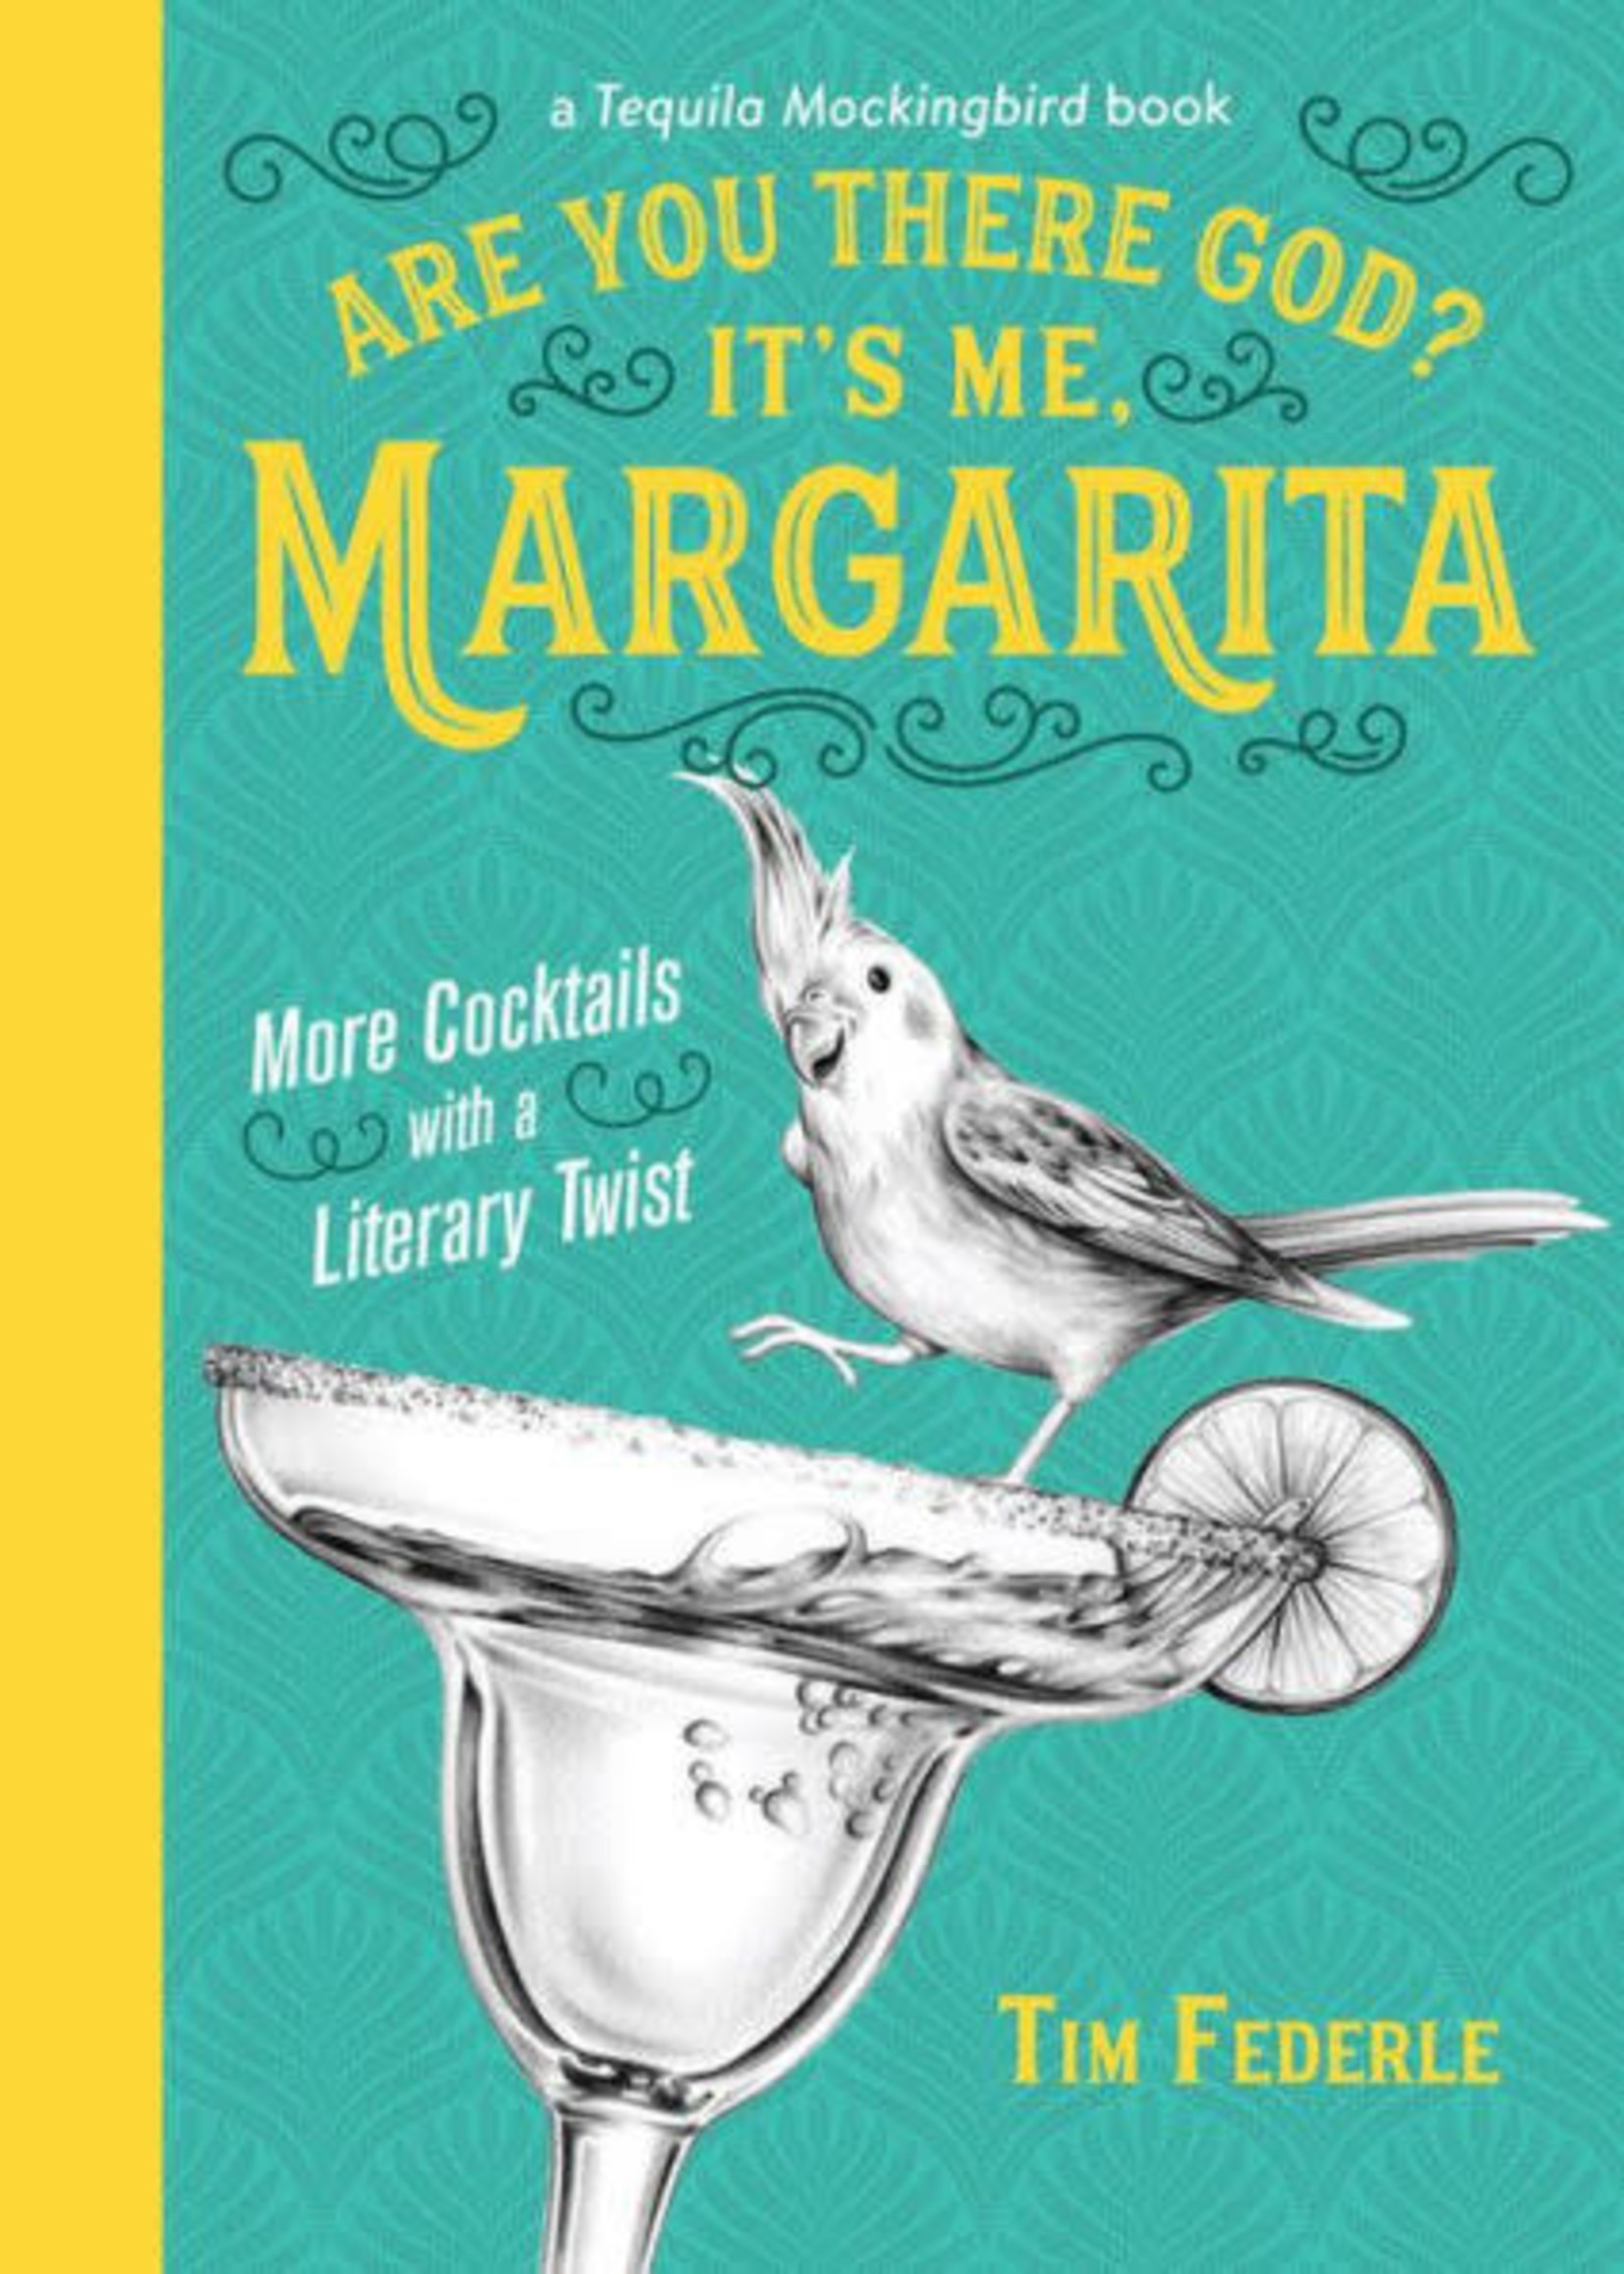 Common Ground Distributors Are You There God? It's Me, Margarita